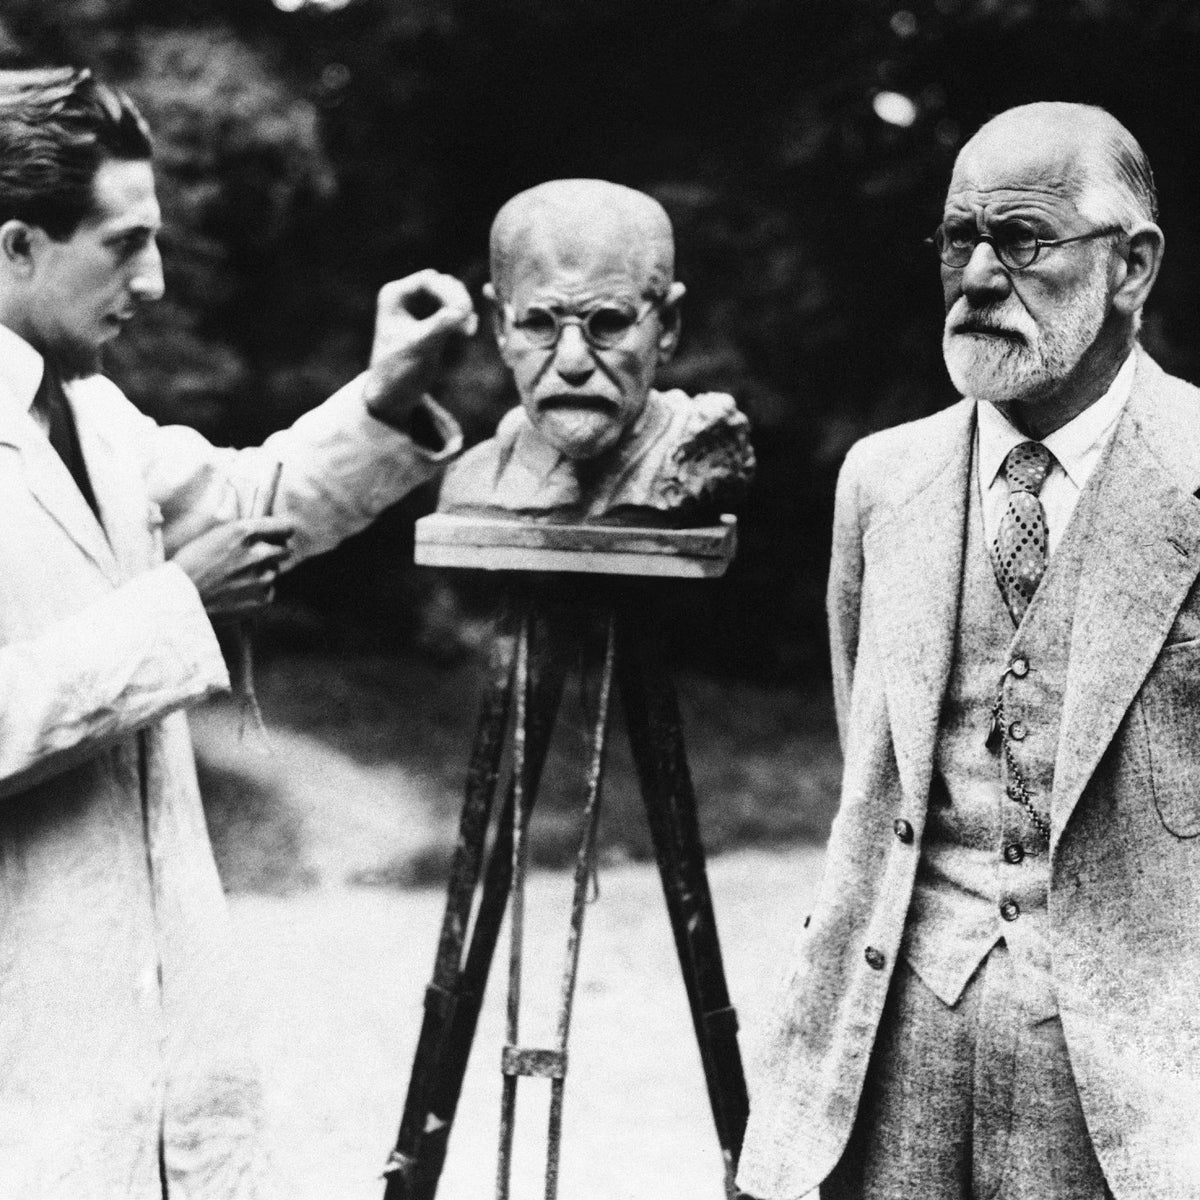 Sigmund Freud as he poses for sculptor Oscar Nemon in Vienna, 1931.